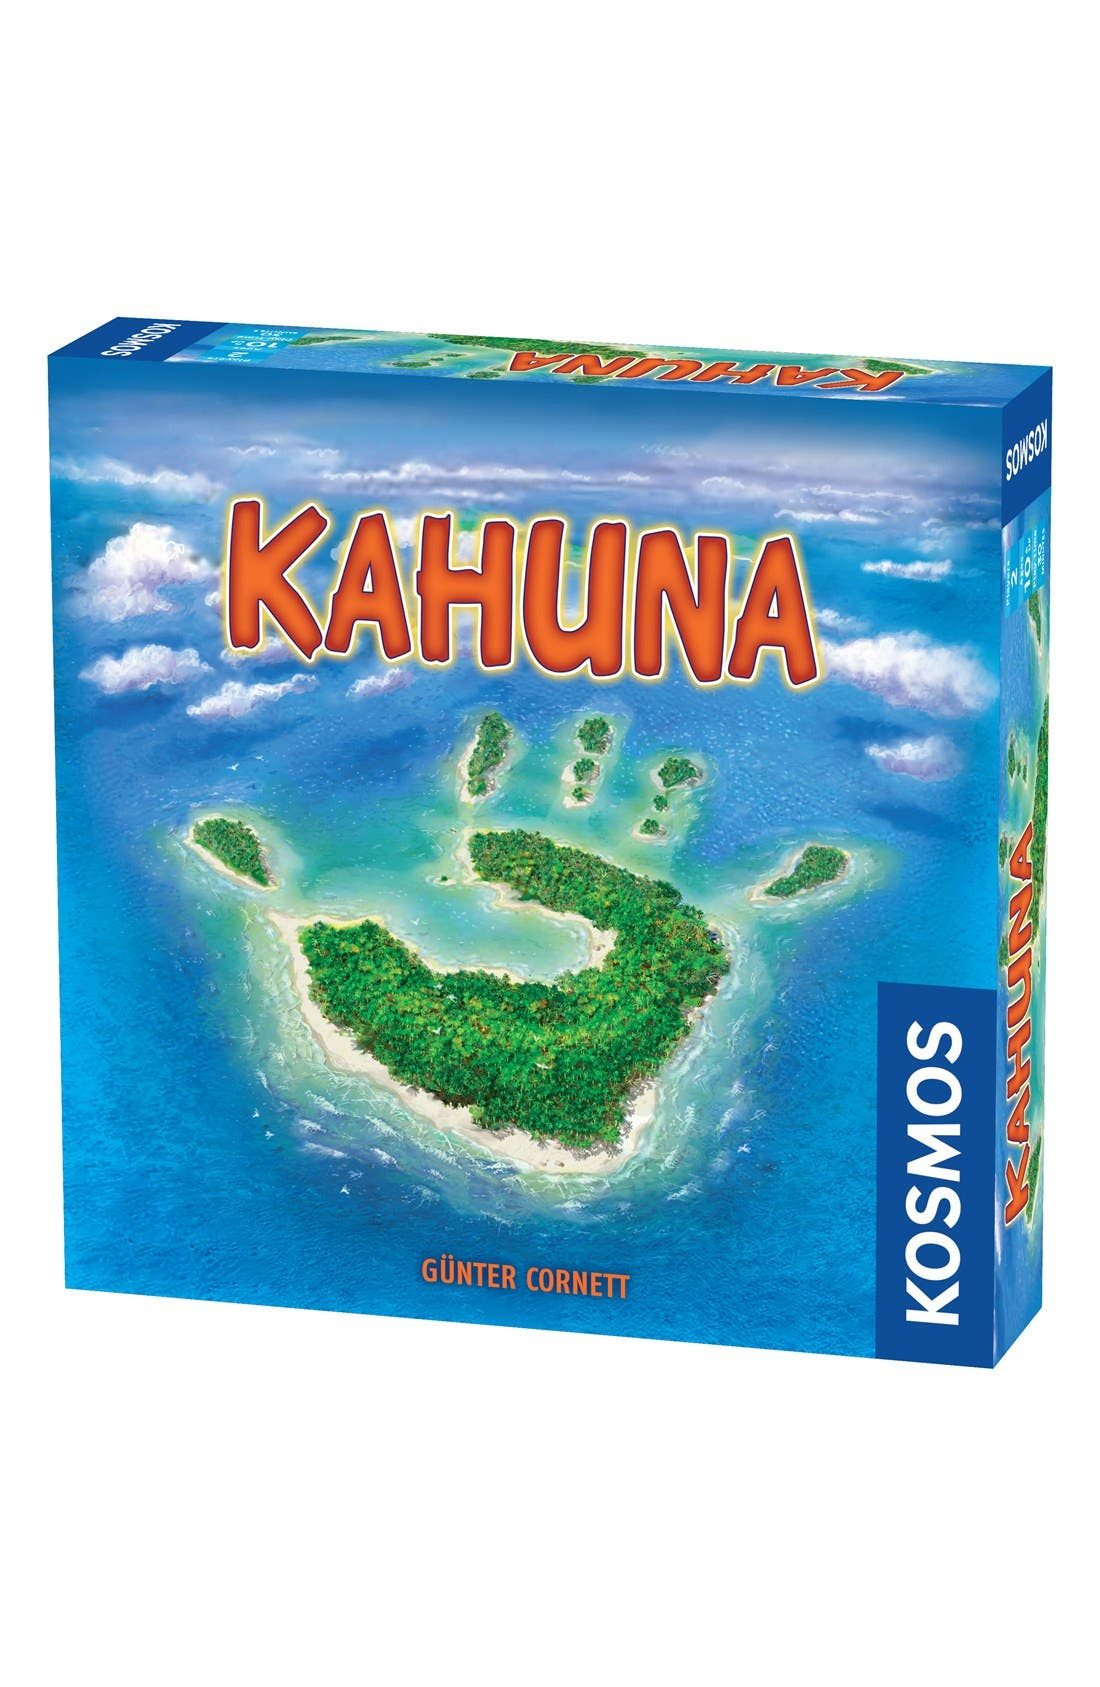 'Kahuna' Two-Player Board Game,                             Main thumbnail 1, color,                             Blue